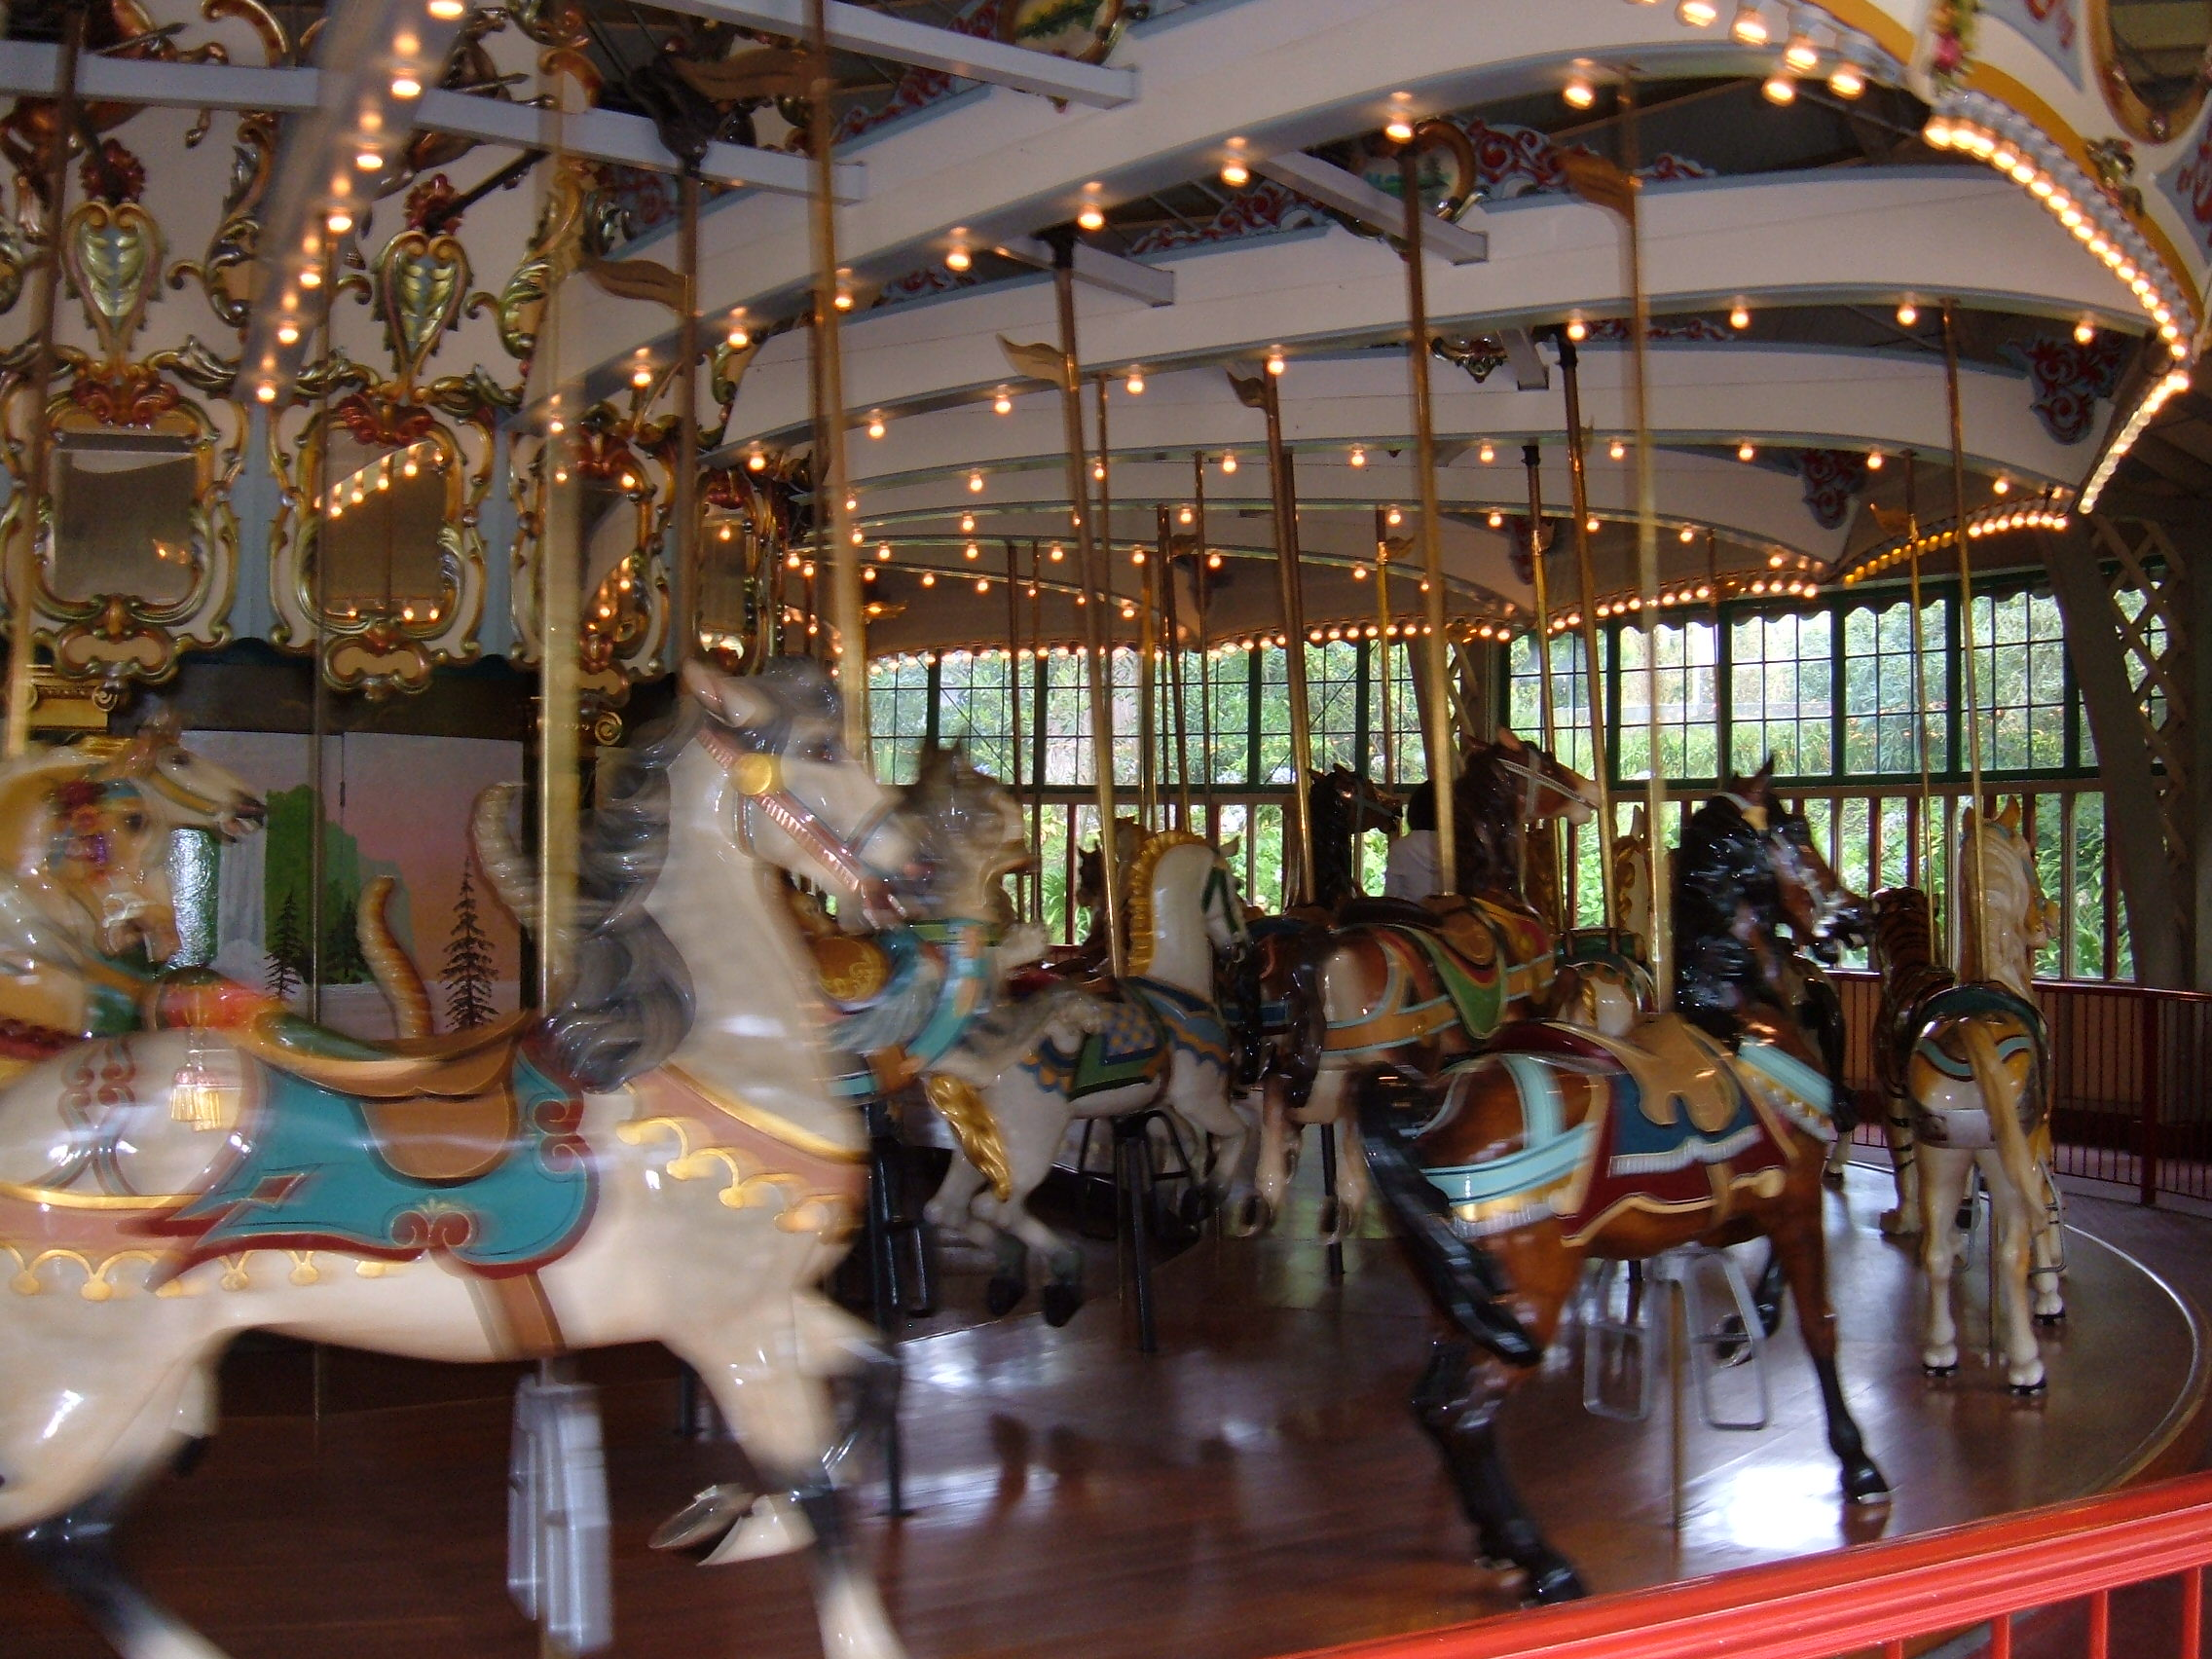 Dentzel Carousel at SF Zoo interior 10